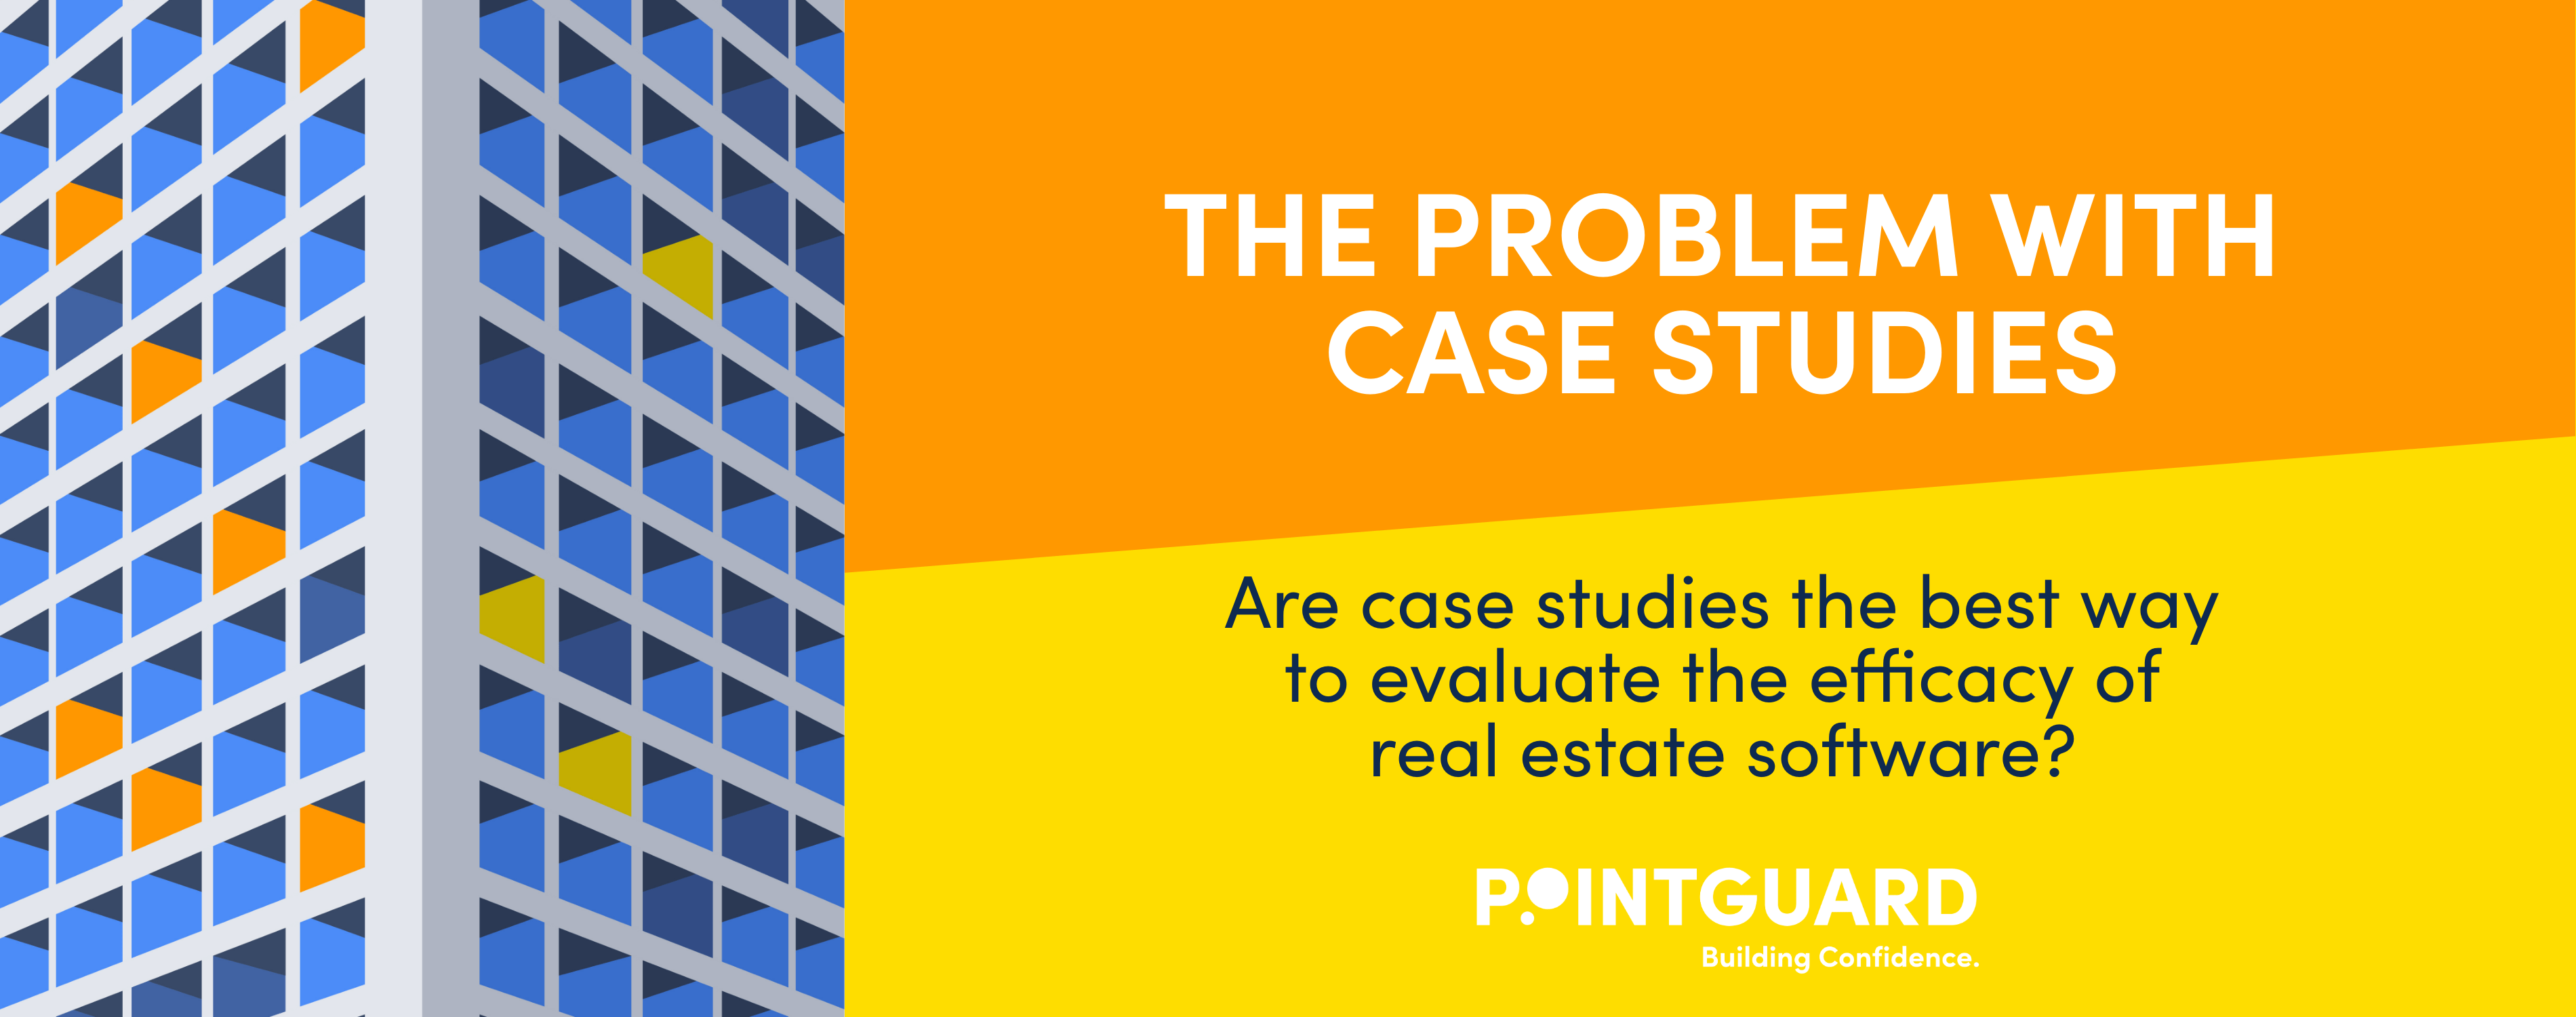 The Problem with Case Studies